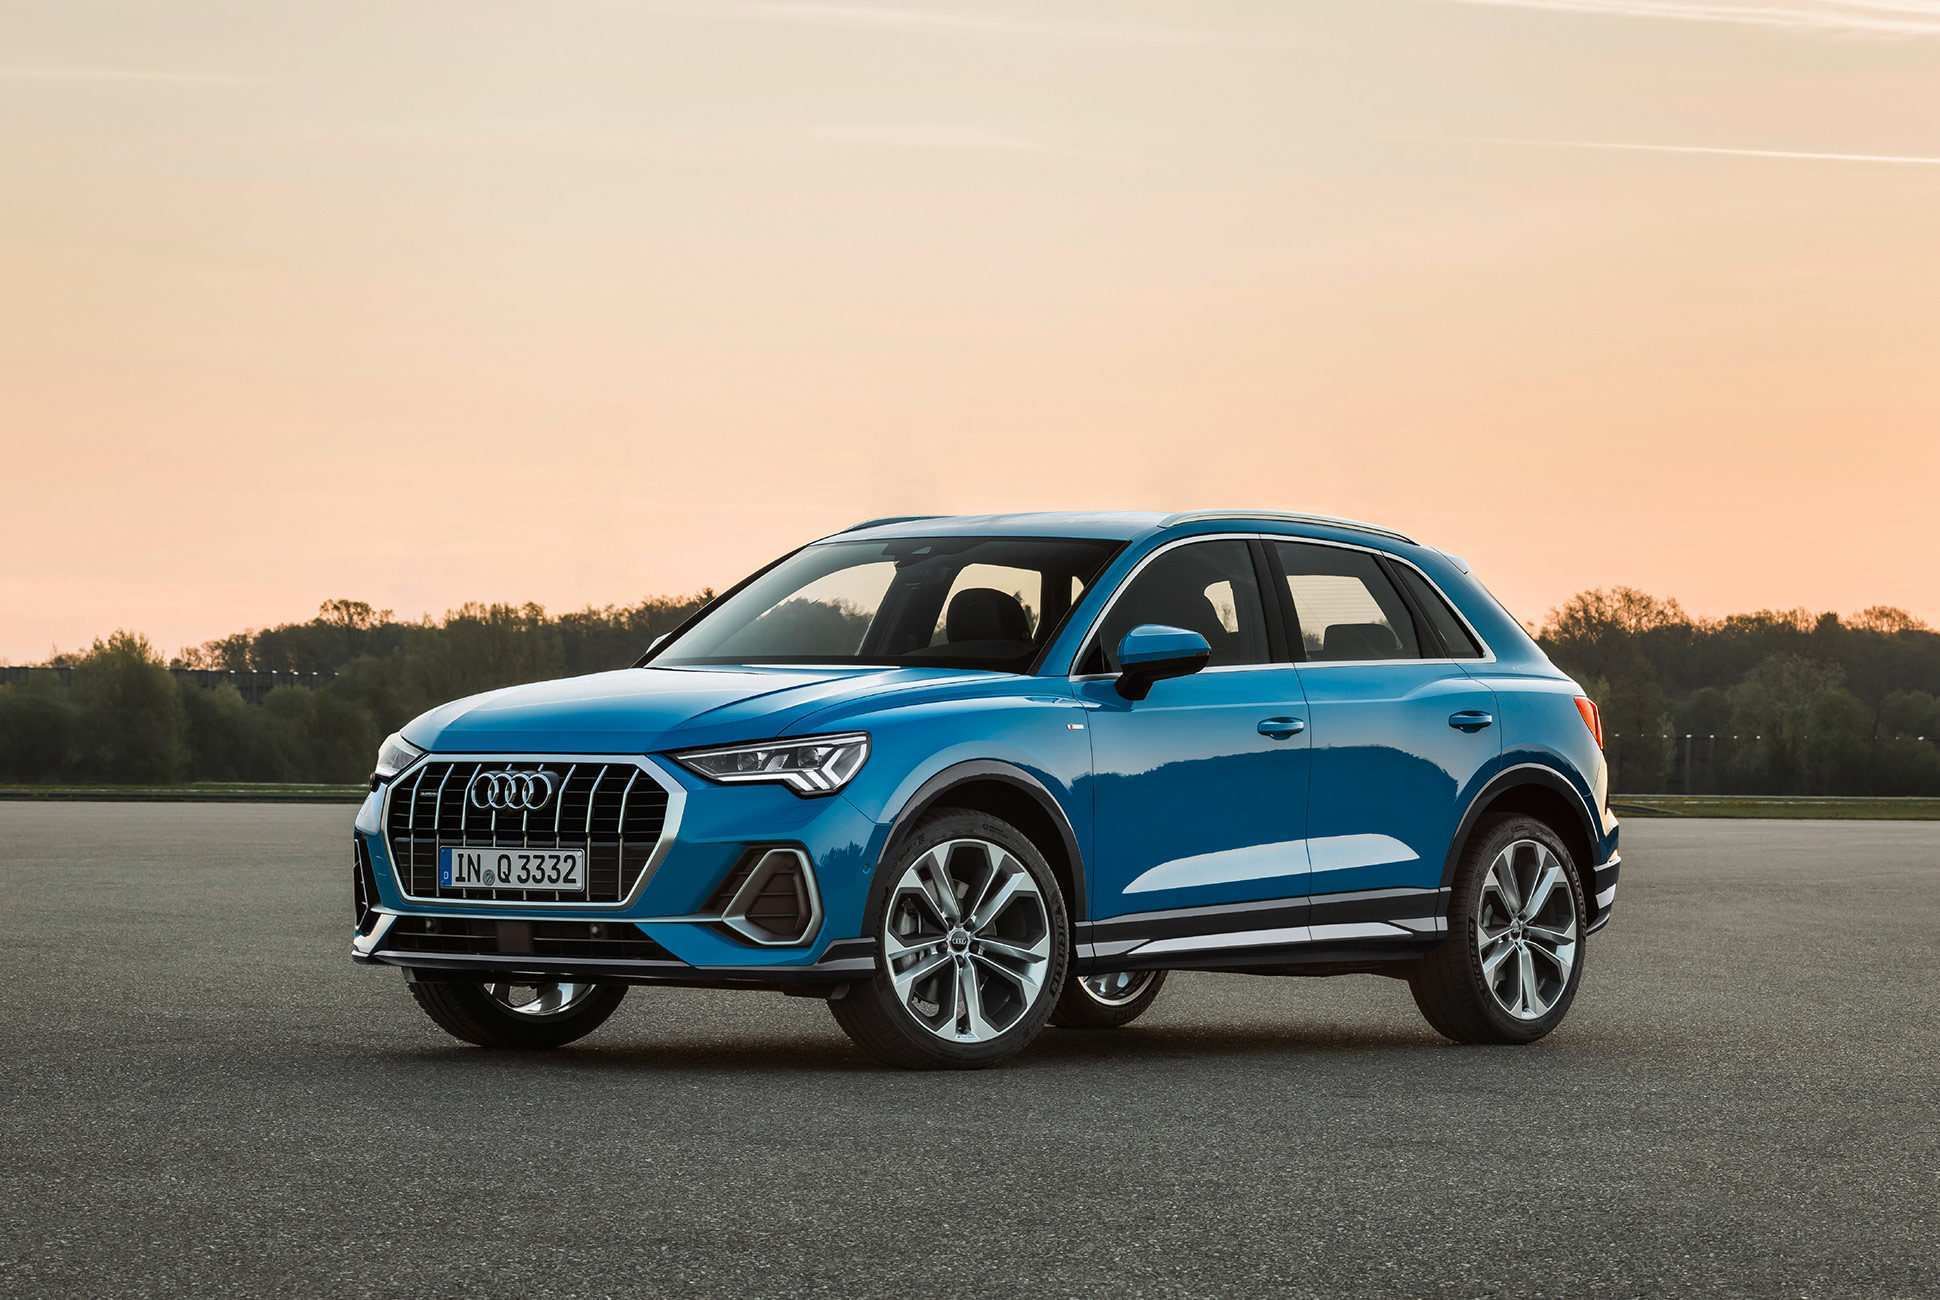 56 All New 2019 Audi Q3 Release Date And Concept